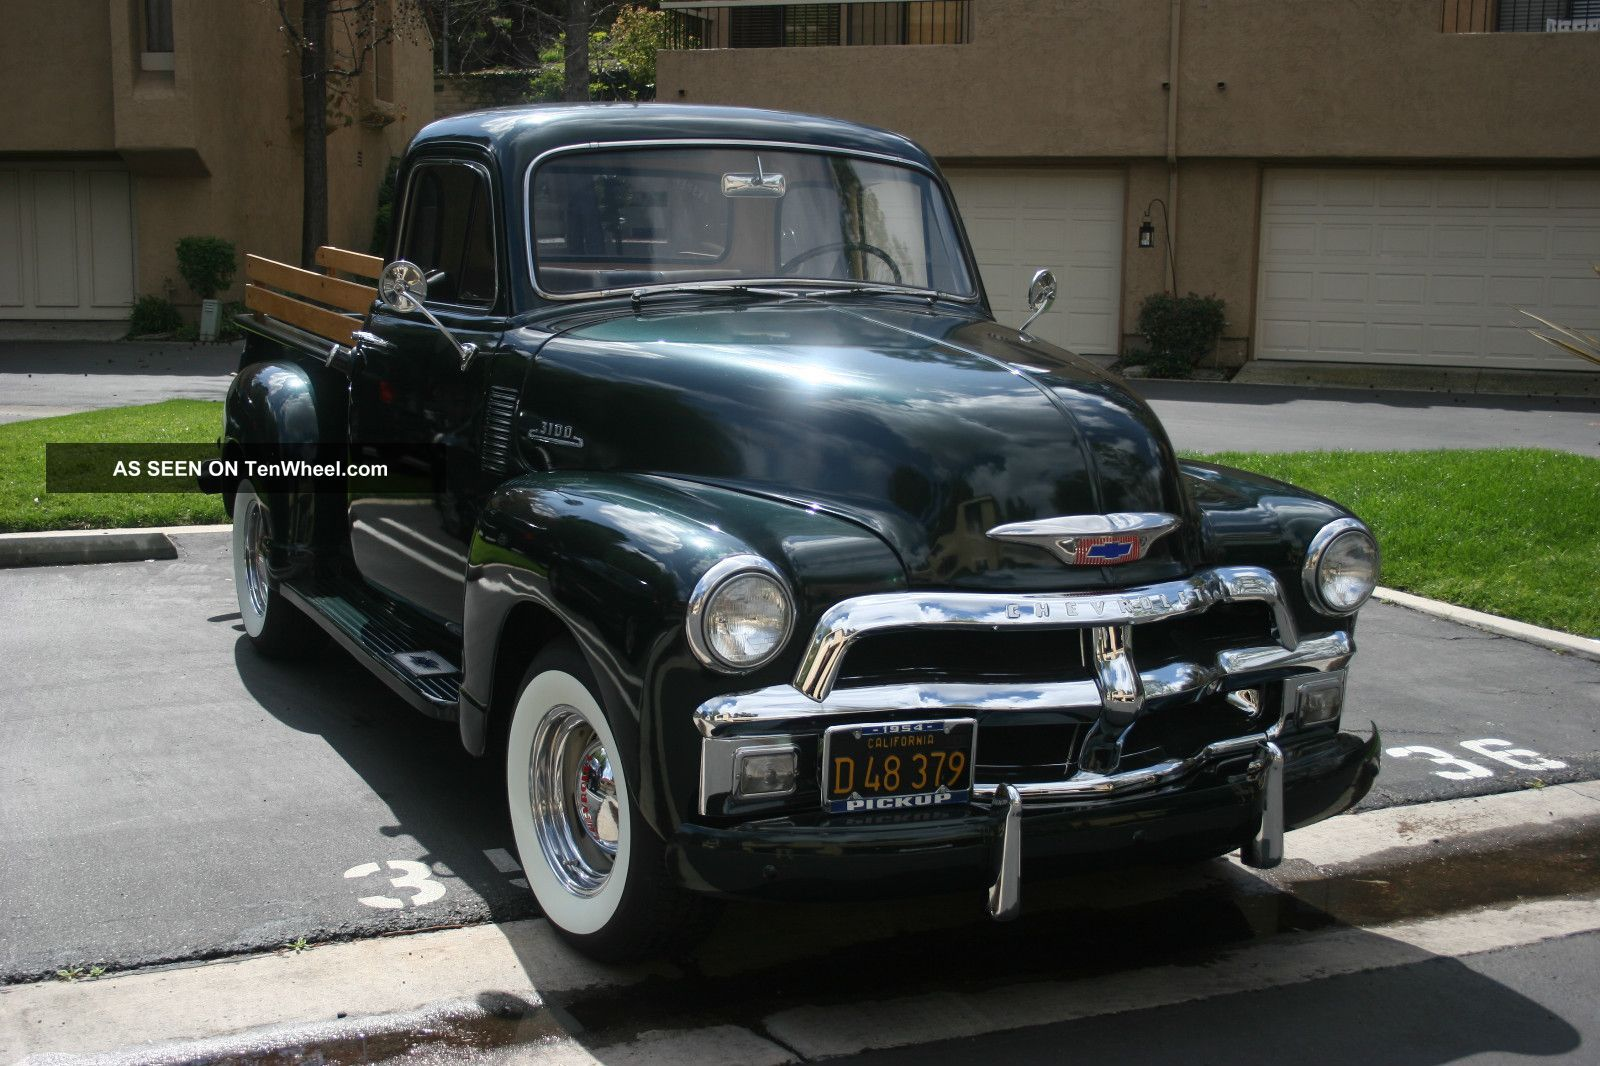 All Chevy 1954 chevy : 1954 Chevy 3100 Pickup with hood up | Classic Cars 1950s ...